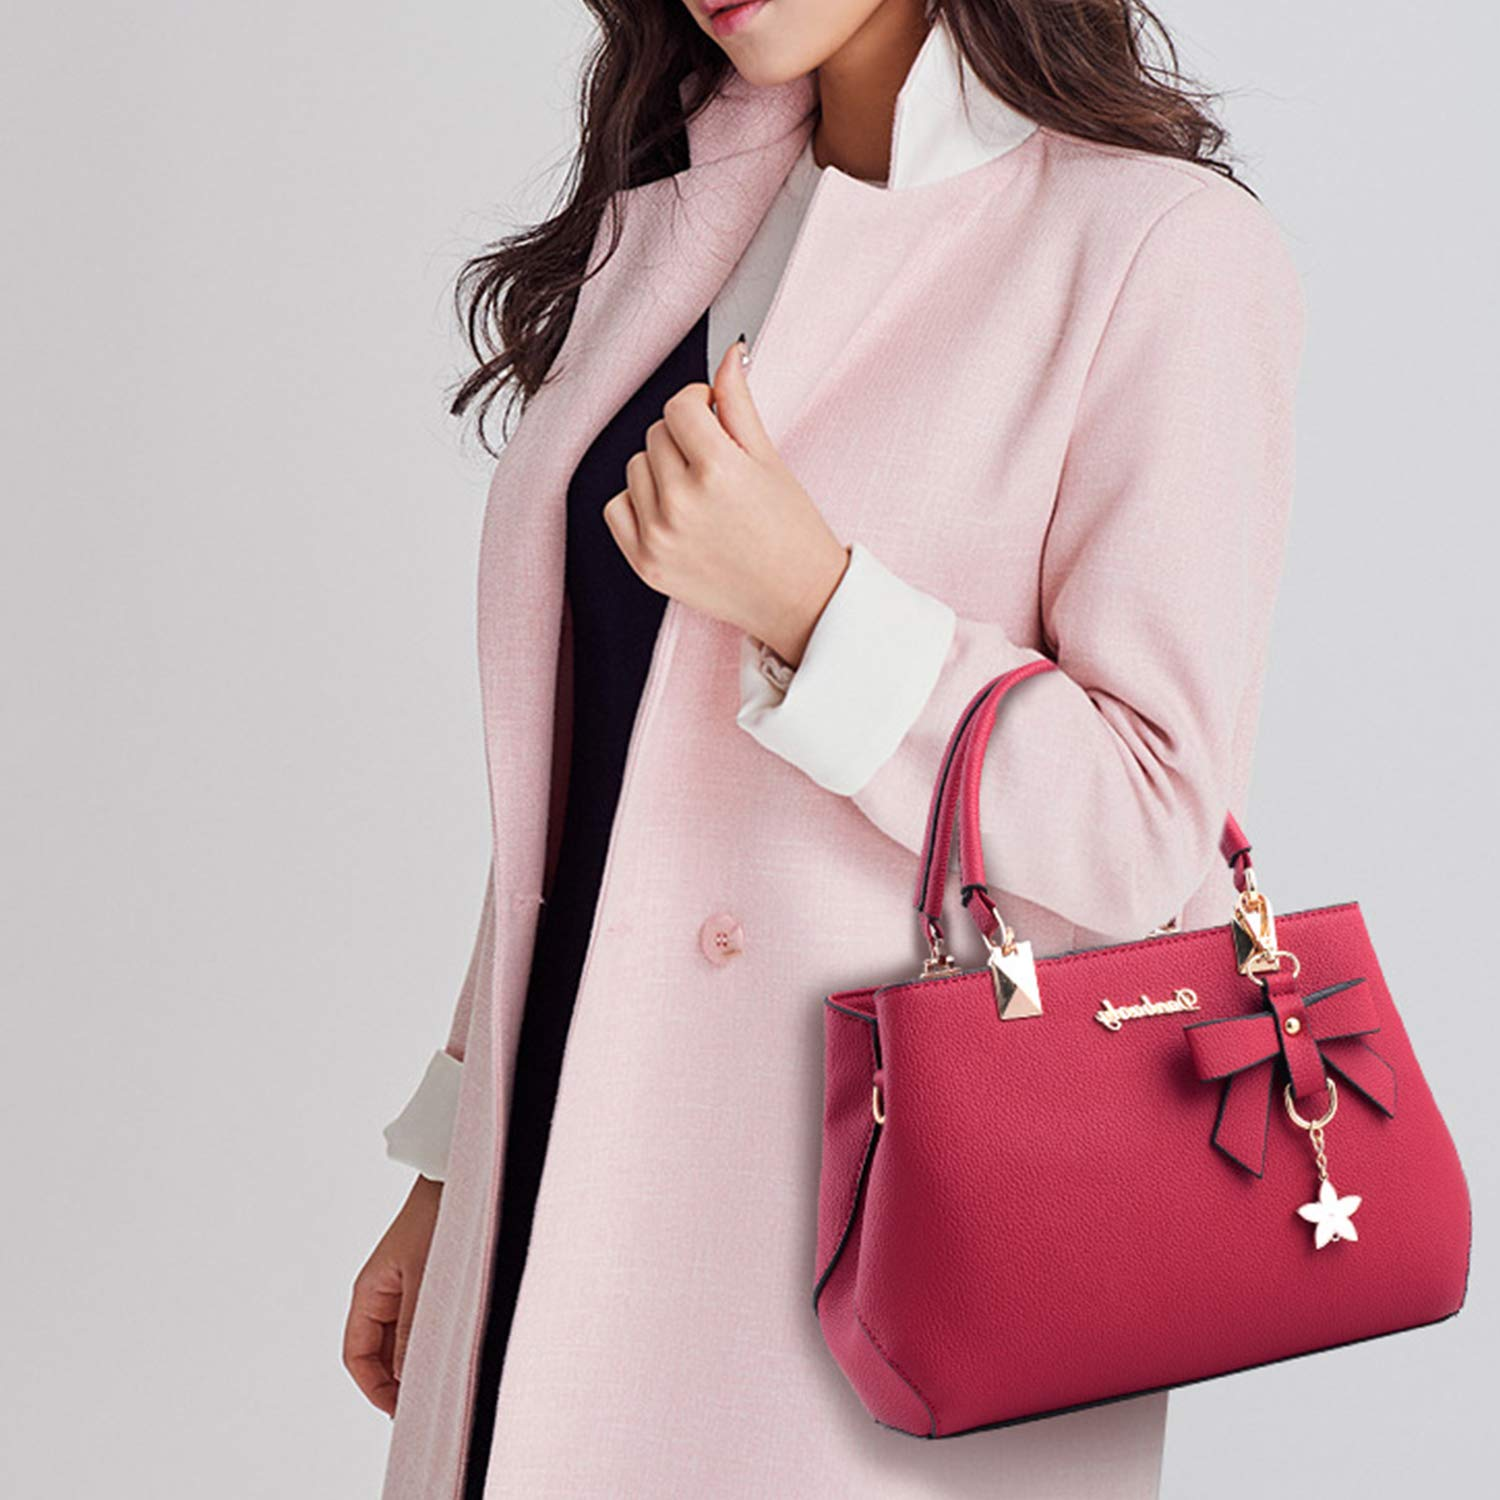 Fashion PU Leather Handbags Shoulder Bag Satchel with Adjustable Strap Women Crossbody Bags